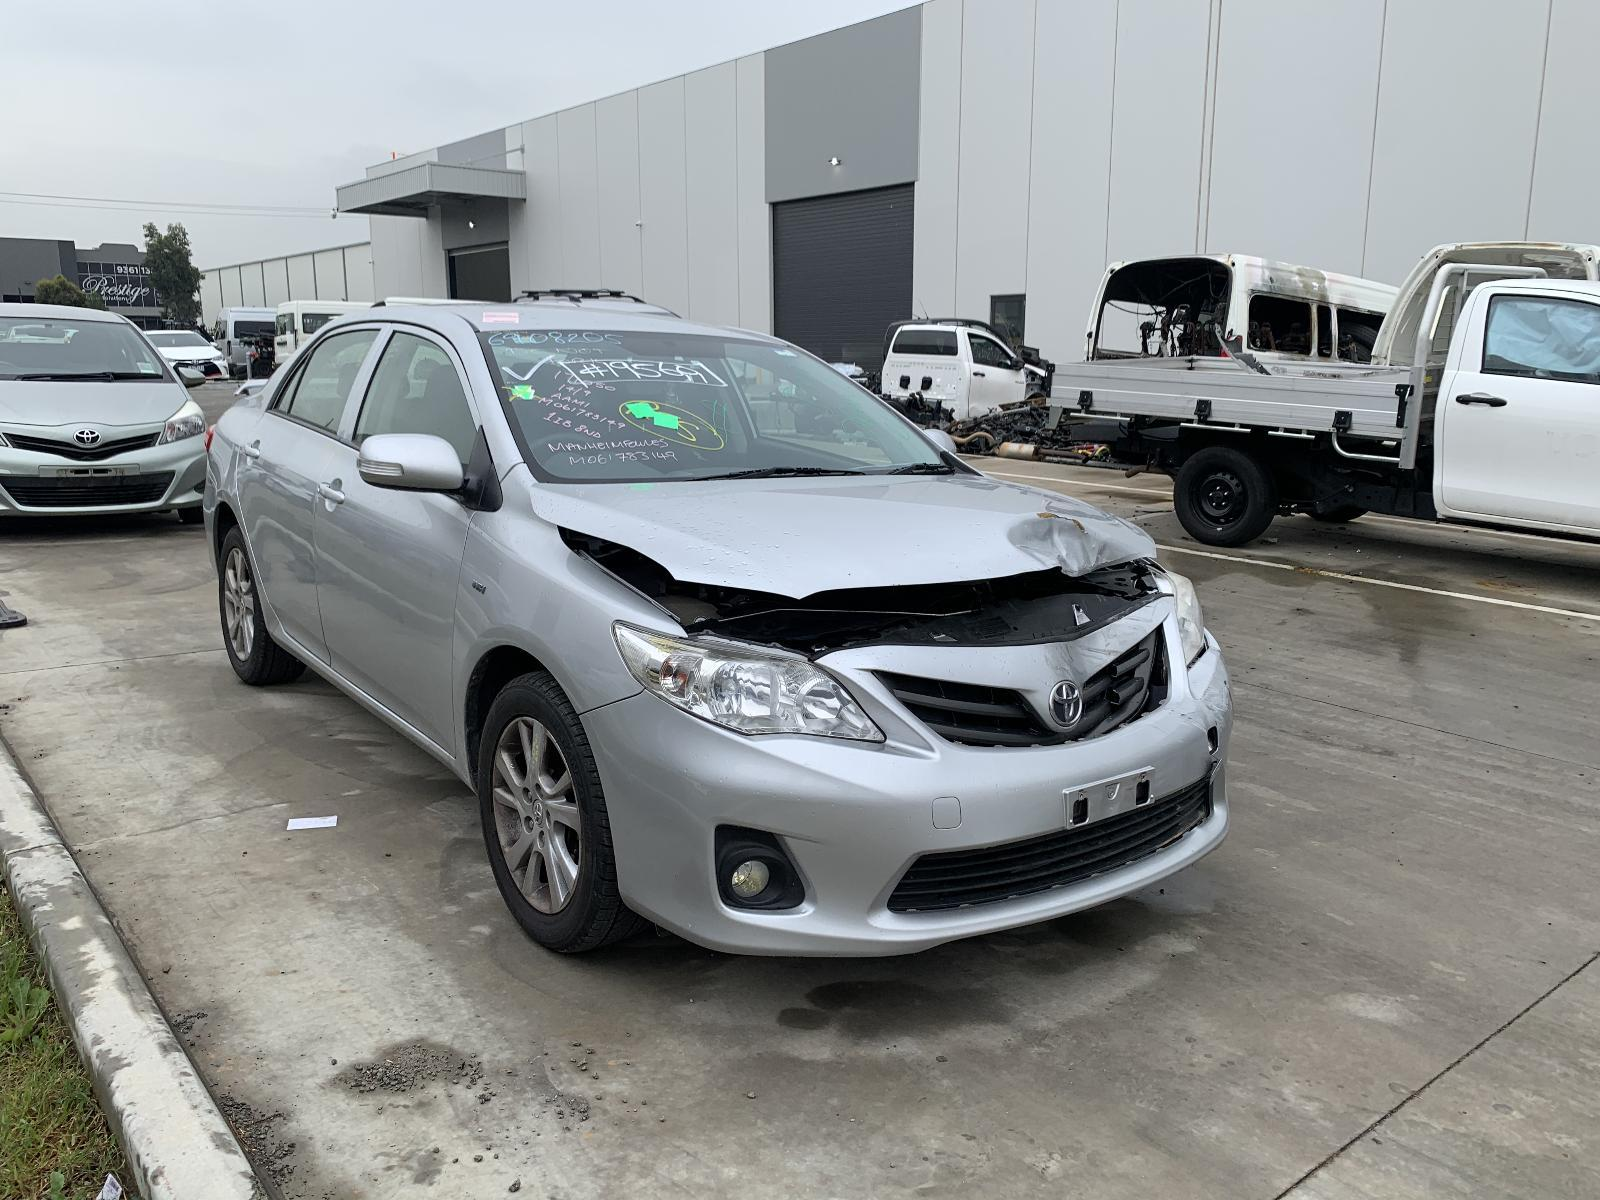 Toyota Corolla ASCENT SPORT 2ZR-FE 1.8L Engine Automatic FWD Transmission 03/07 - 12/13